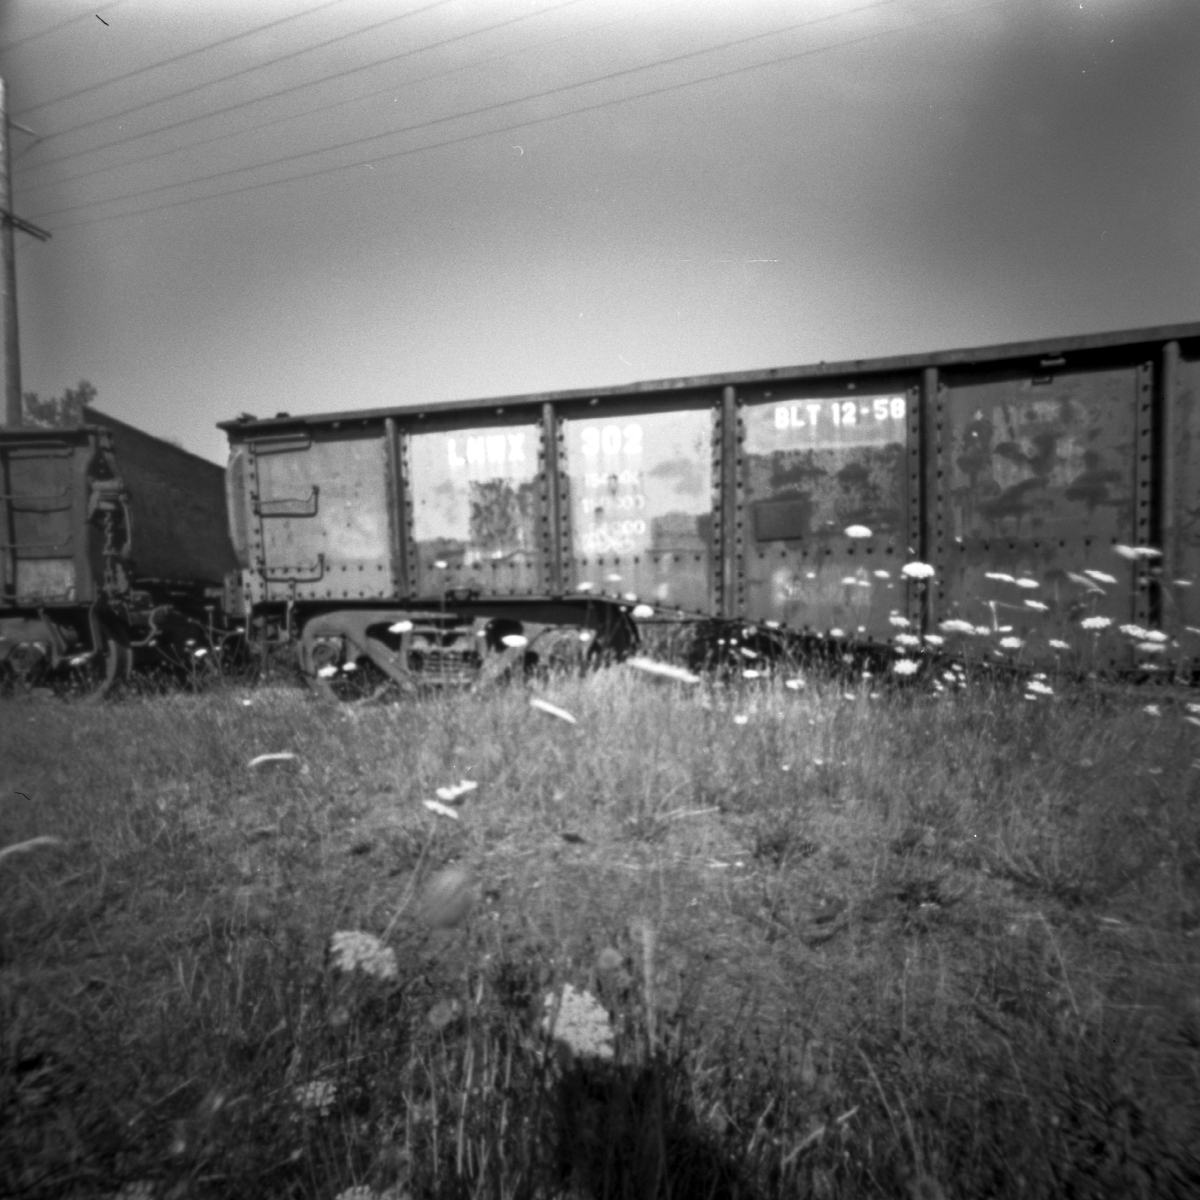 Ondu 6x6 M2 + Acros 100 @ 3 seconds.